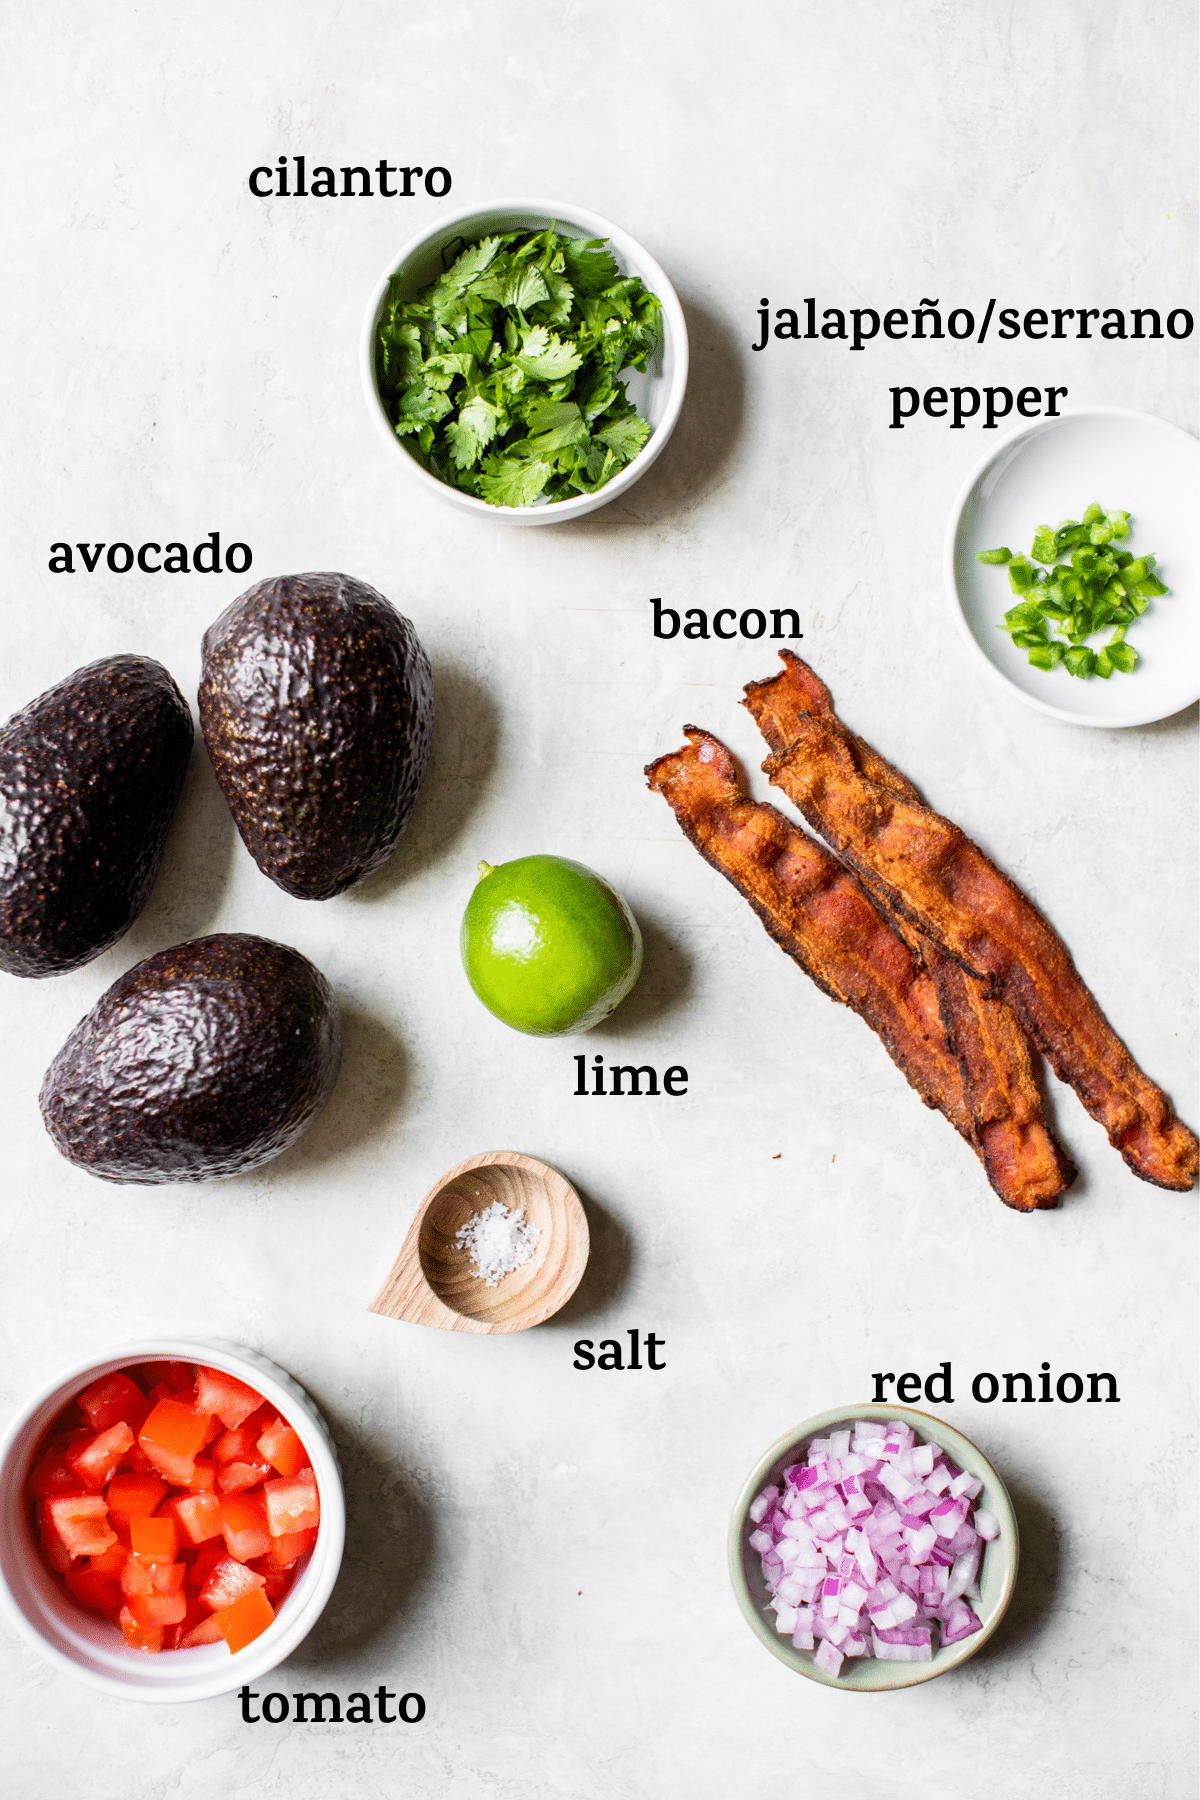 guacamole ingredients with text overlay